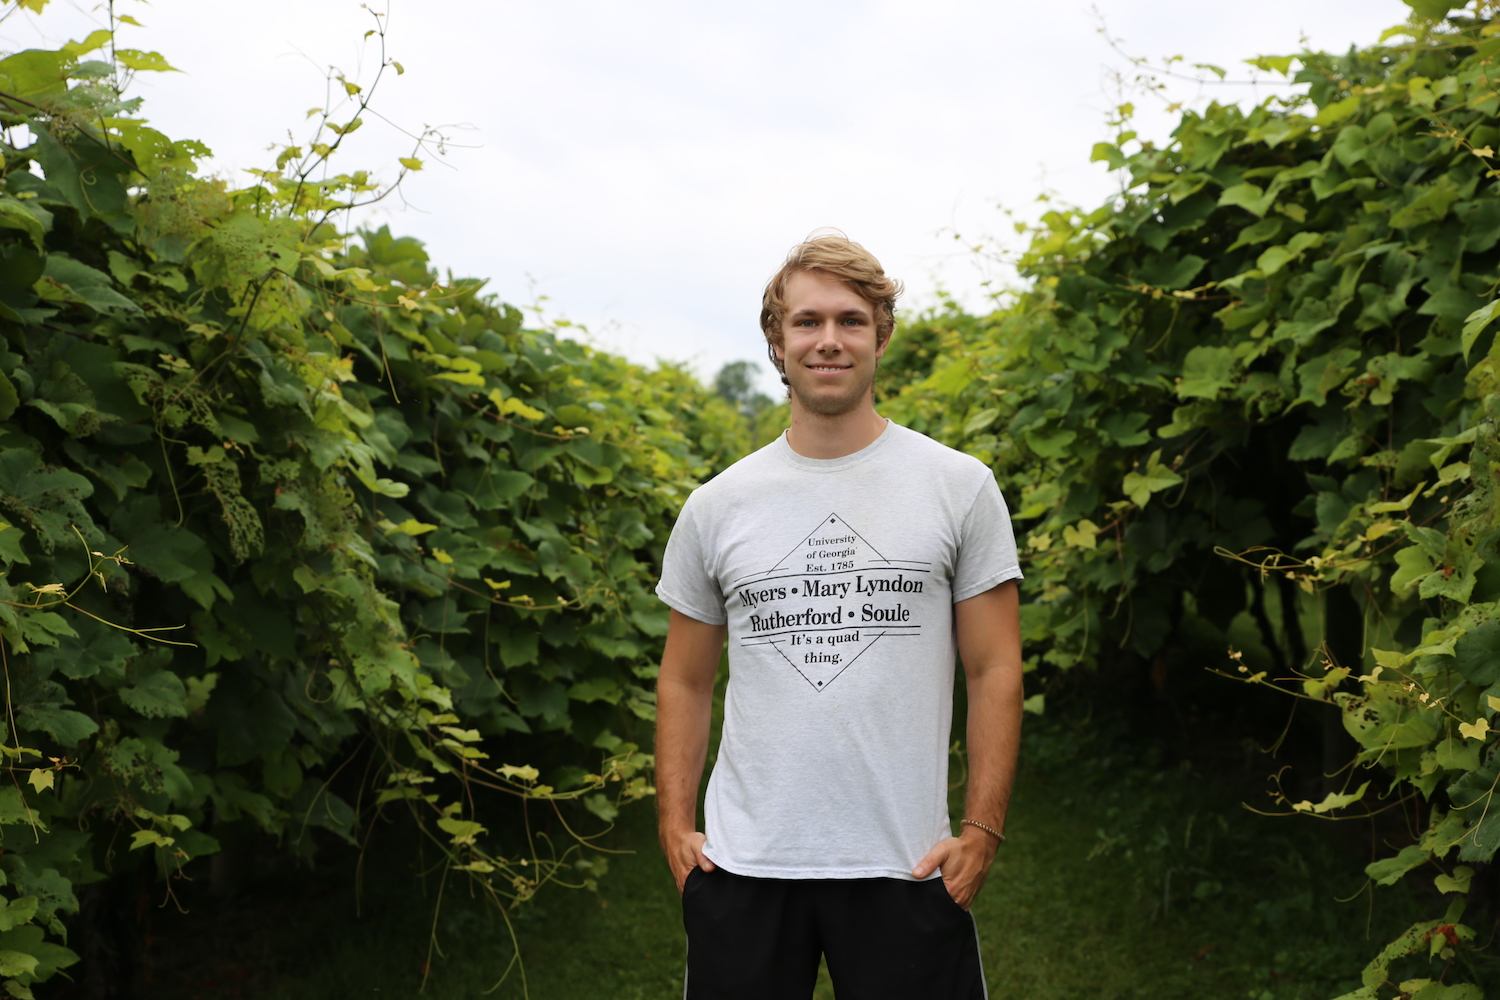 Trent Sutton stands in the foreground with vines at his back at Tiger Mountain Vineyards.